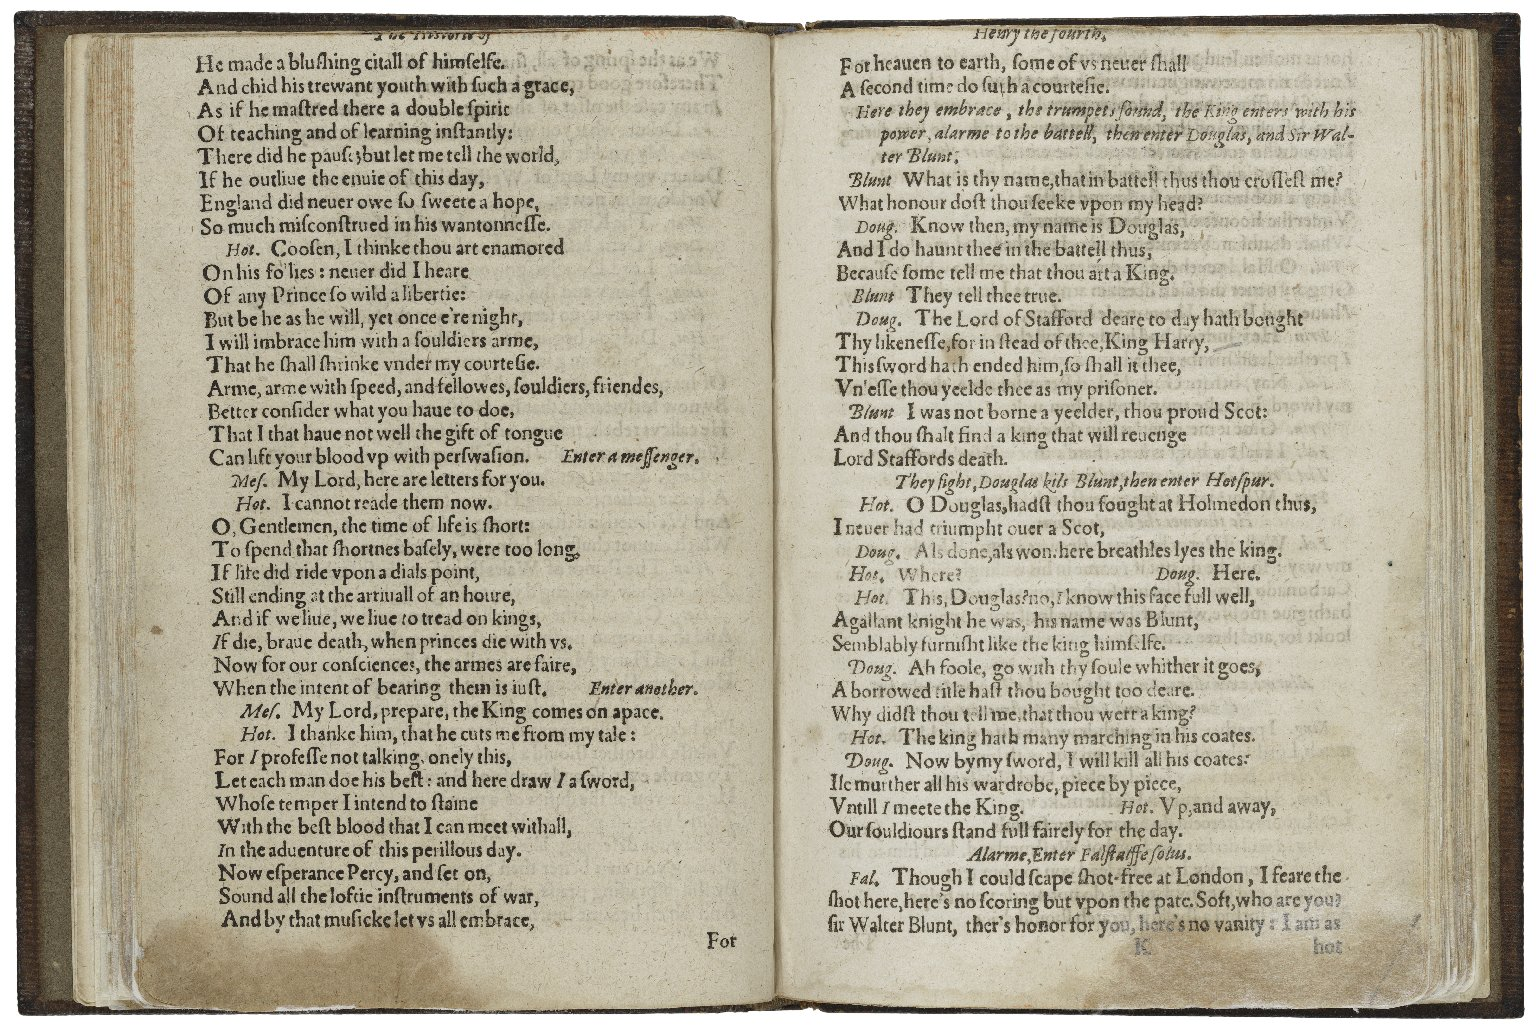 [King Henry IV. Part 1] The history of Henrie the fourth : vvith the battell at Shrewsburie, betweene the King, and Lord Henry Percy, surnamed Henry Hotspur of the north : with the humorous conceits of Sir Iohn Falstalffe [sic] / newly corrected by W. Shake-speare.